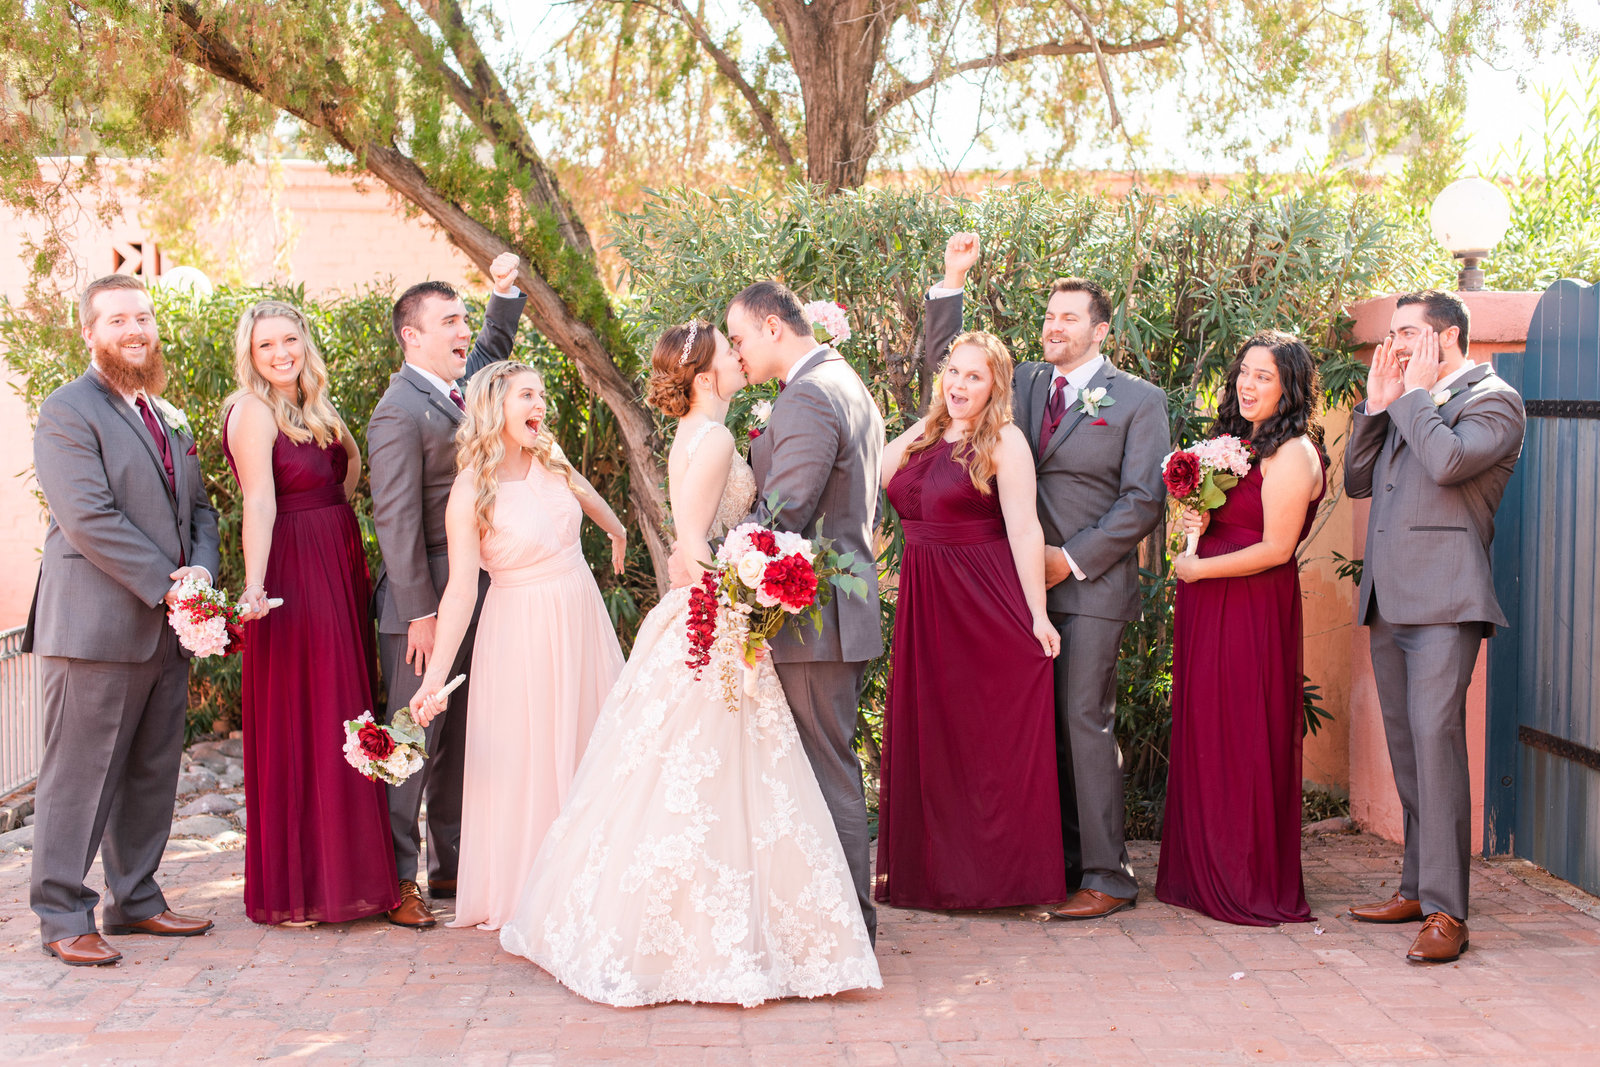 wedding couple kissing and bridal party celebrating